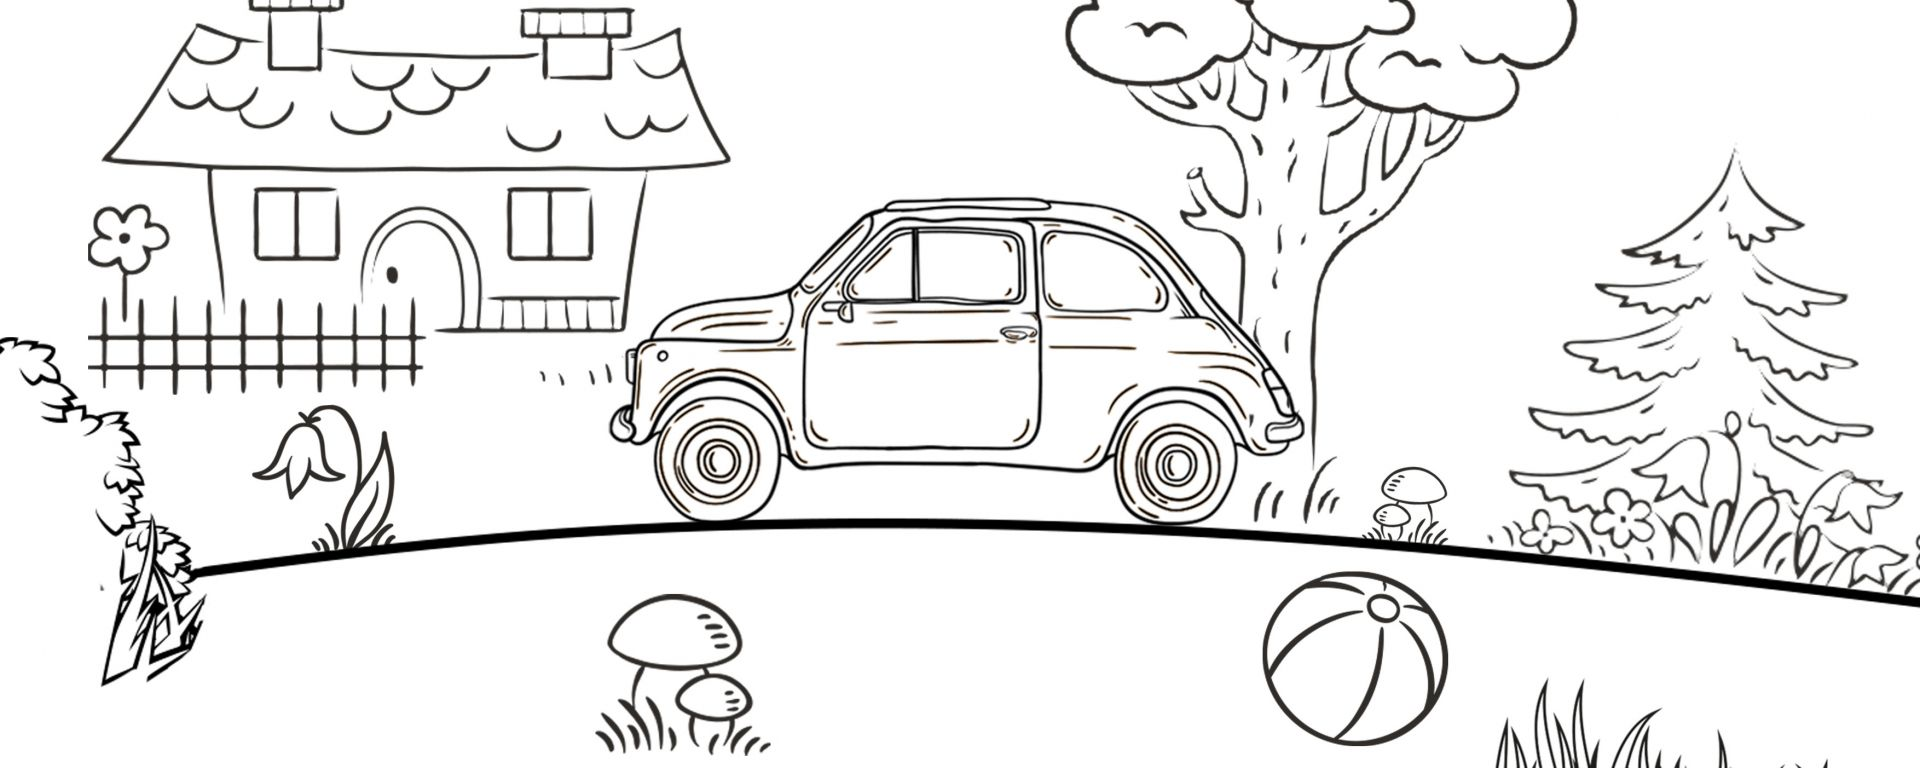 Fiat 500 Colorbook: immagine da colorare